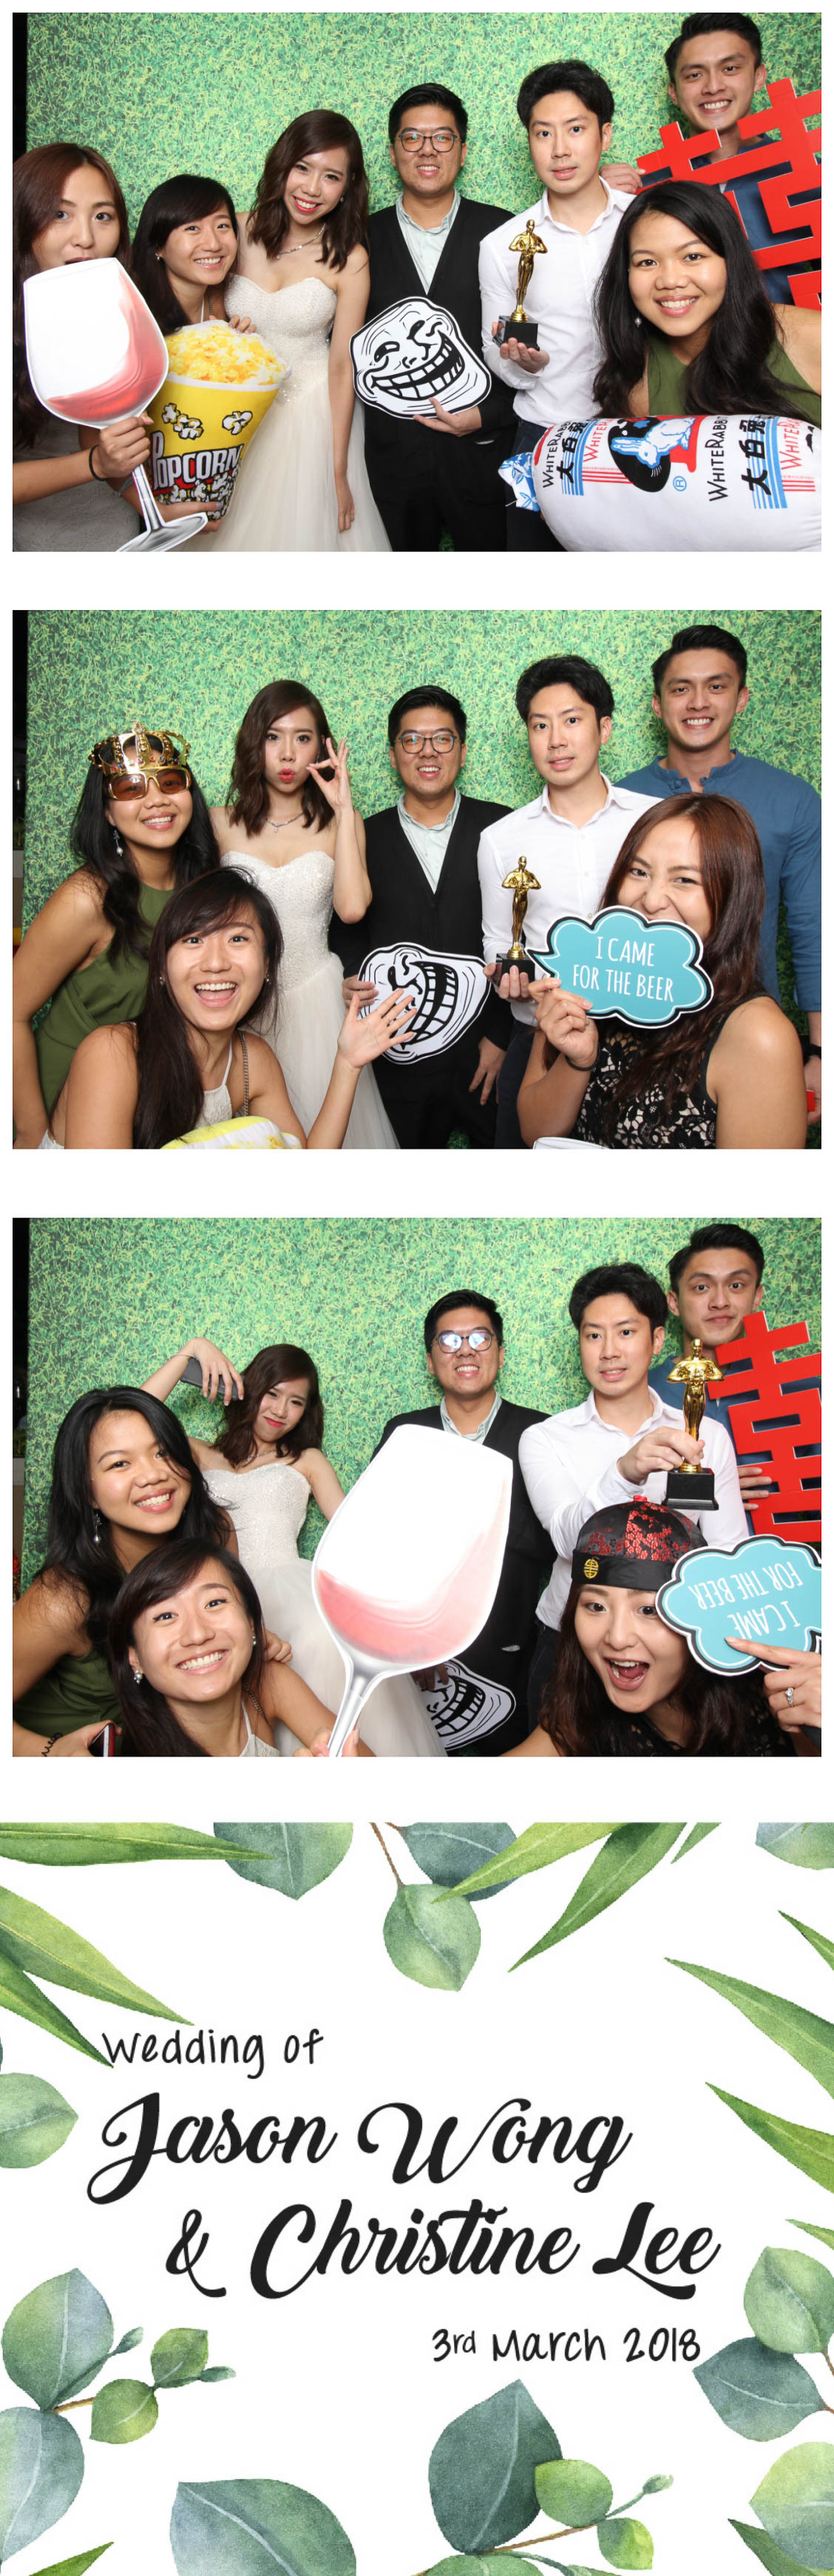 Photobooth 0302-7